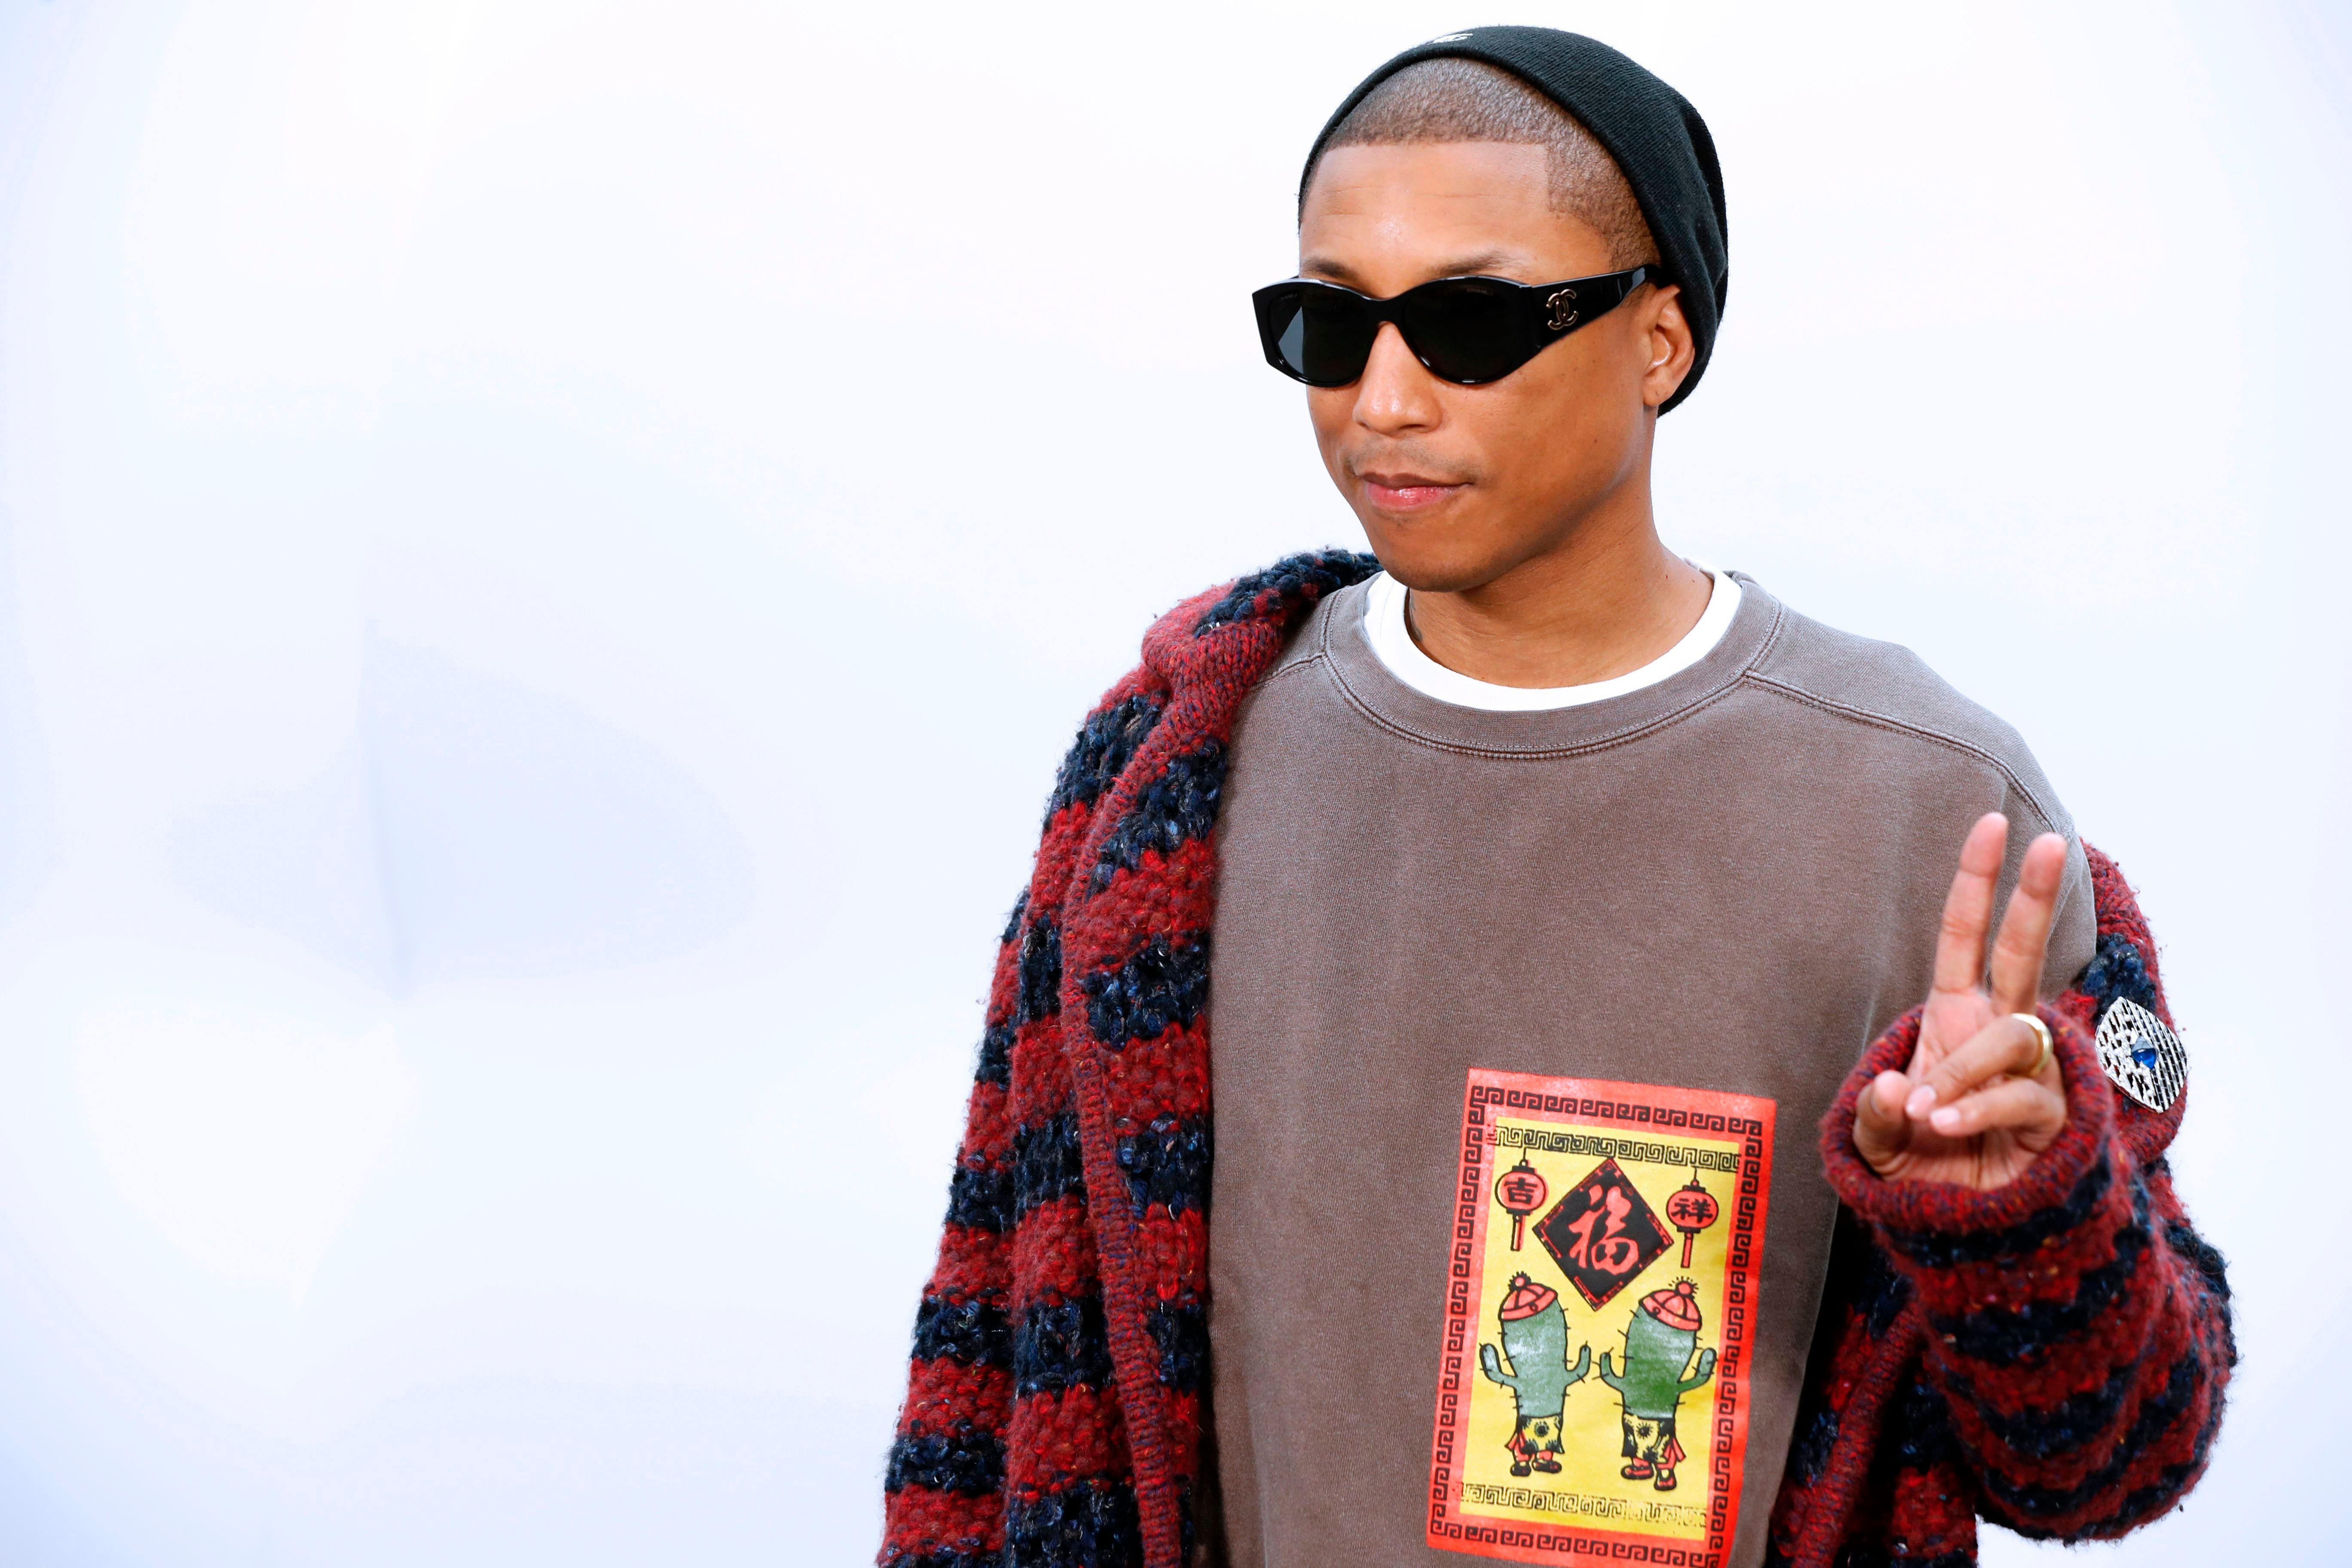 Pharrell Williams Becomes The First Man To Appear In A Chanel Handbag